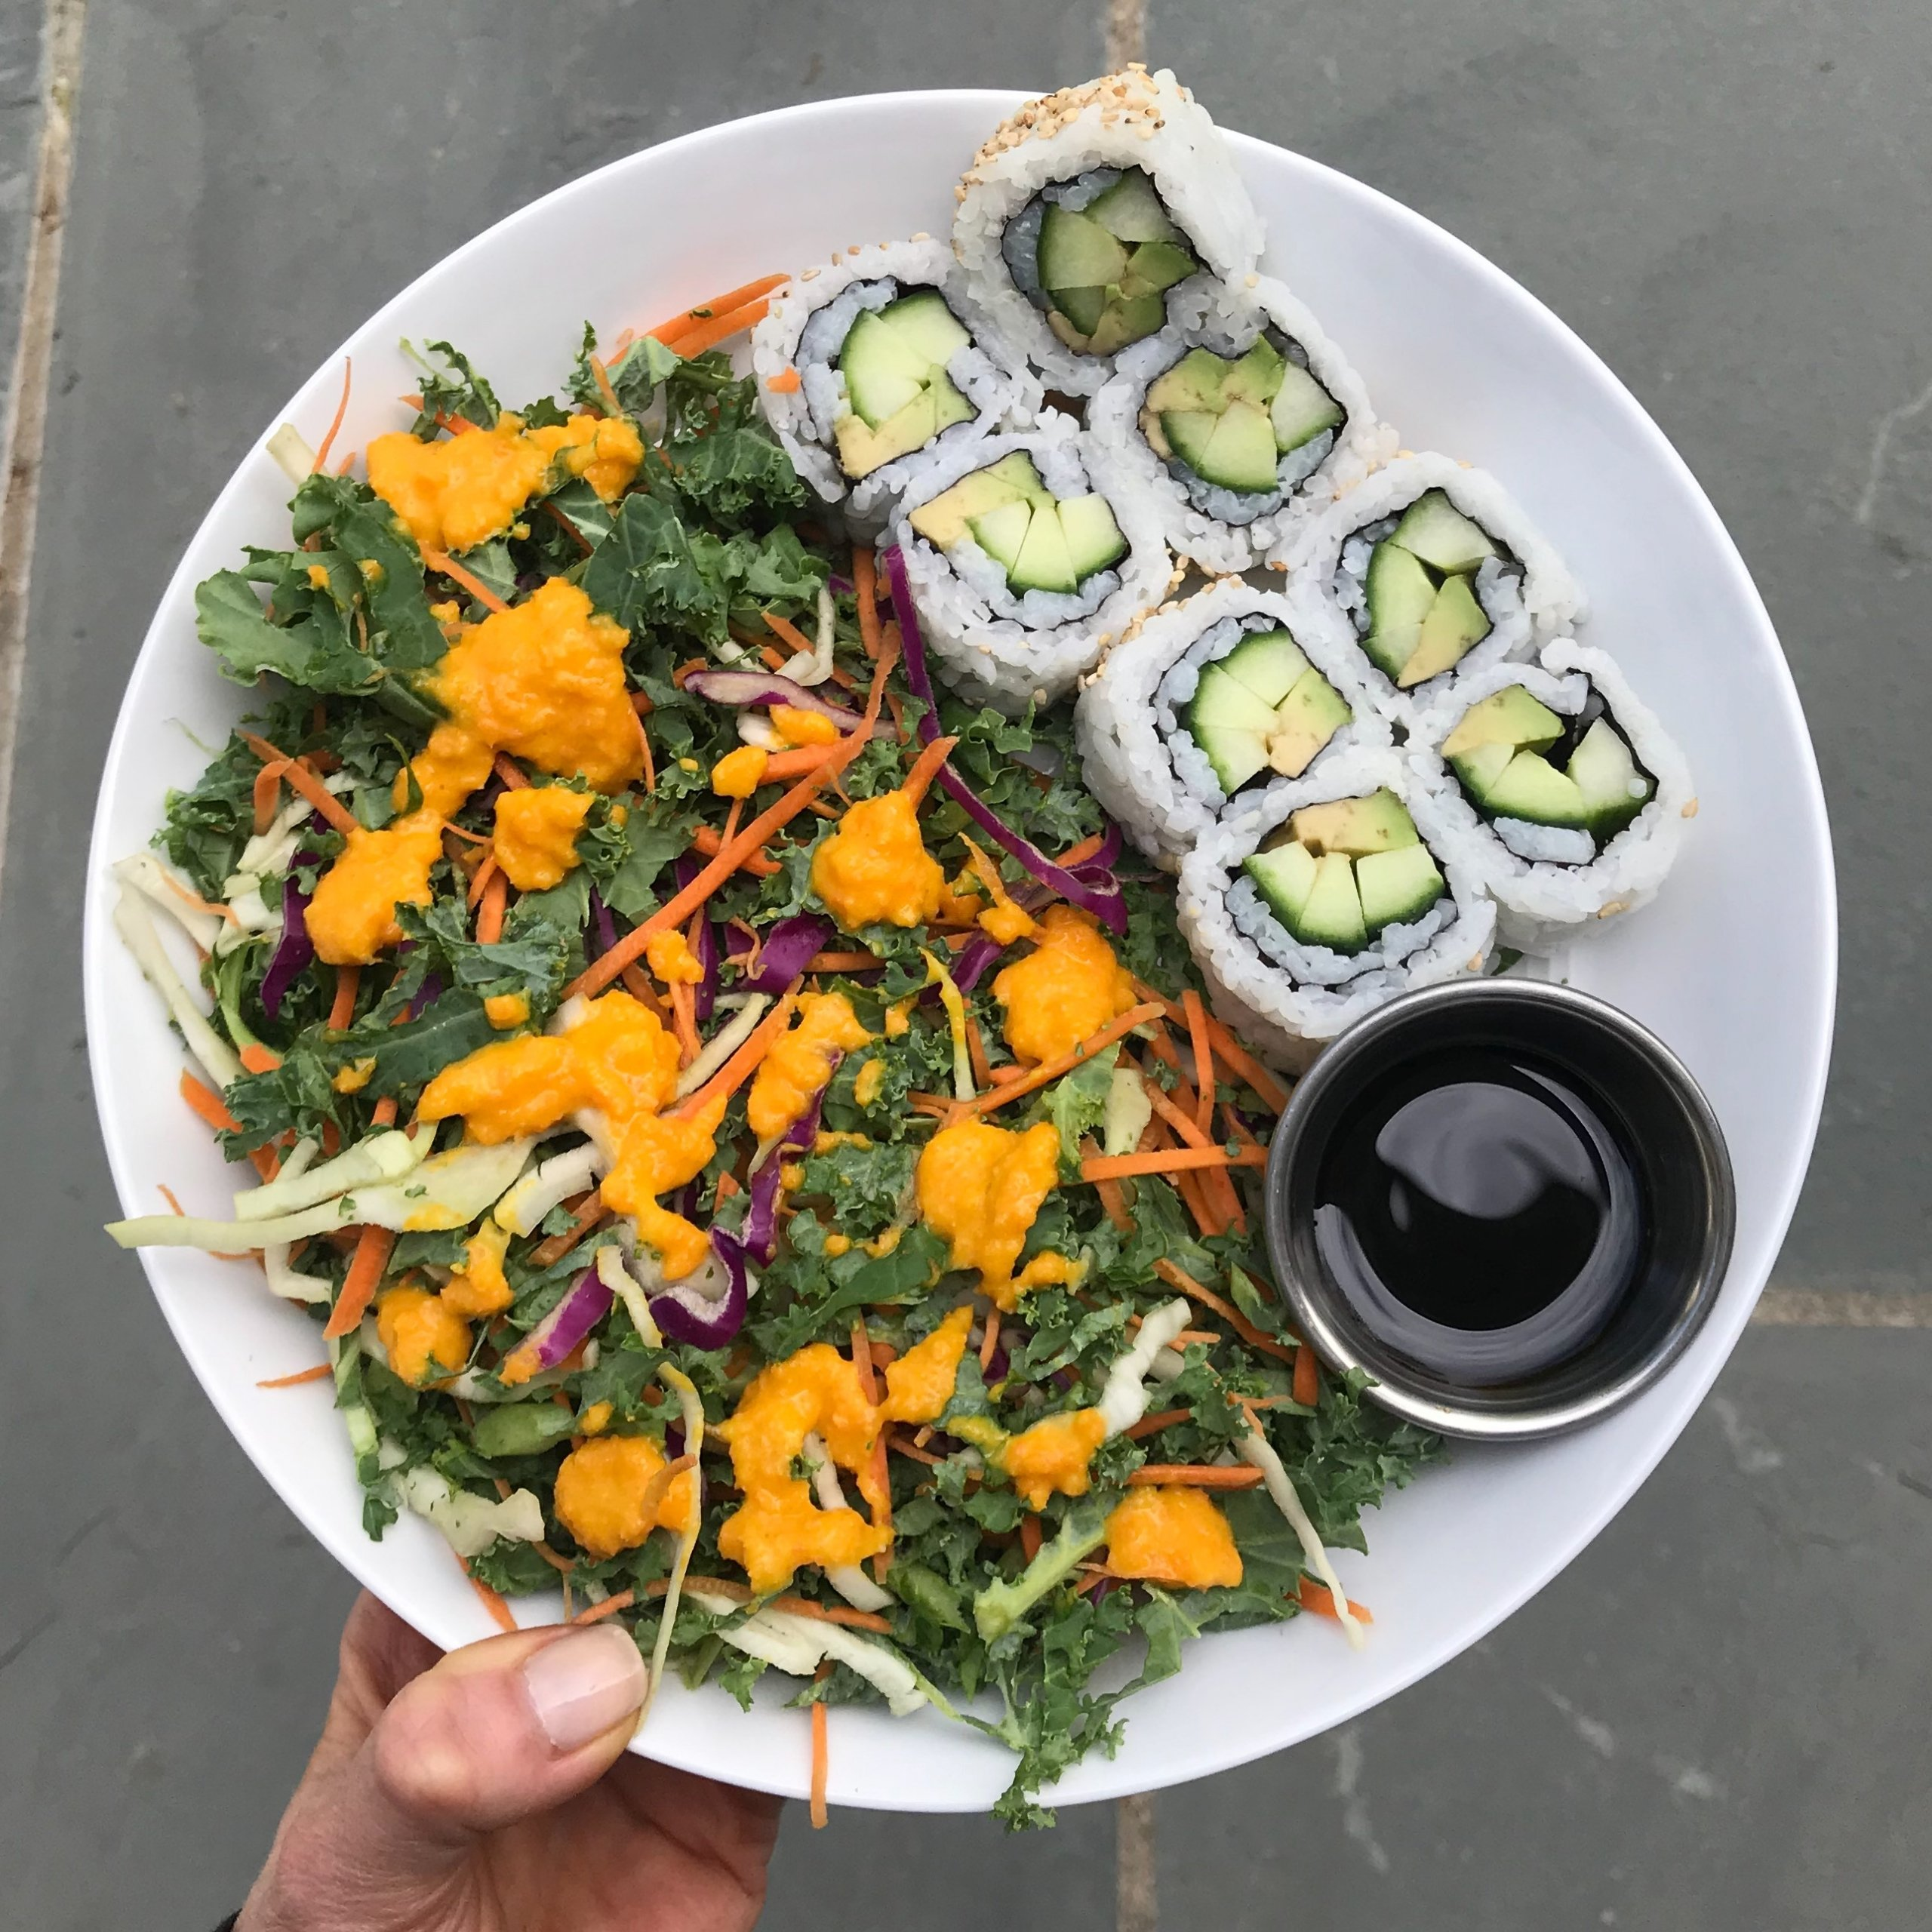 Is your sushi gluten-free www.healthygffamily.com